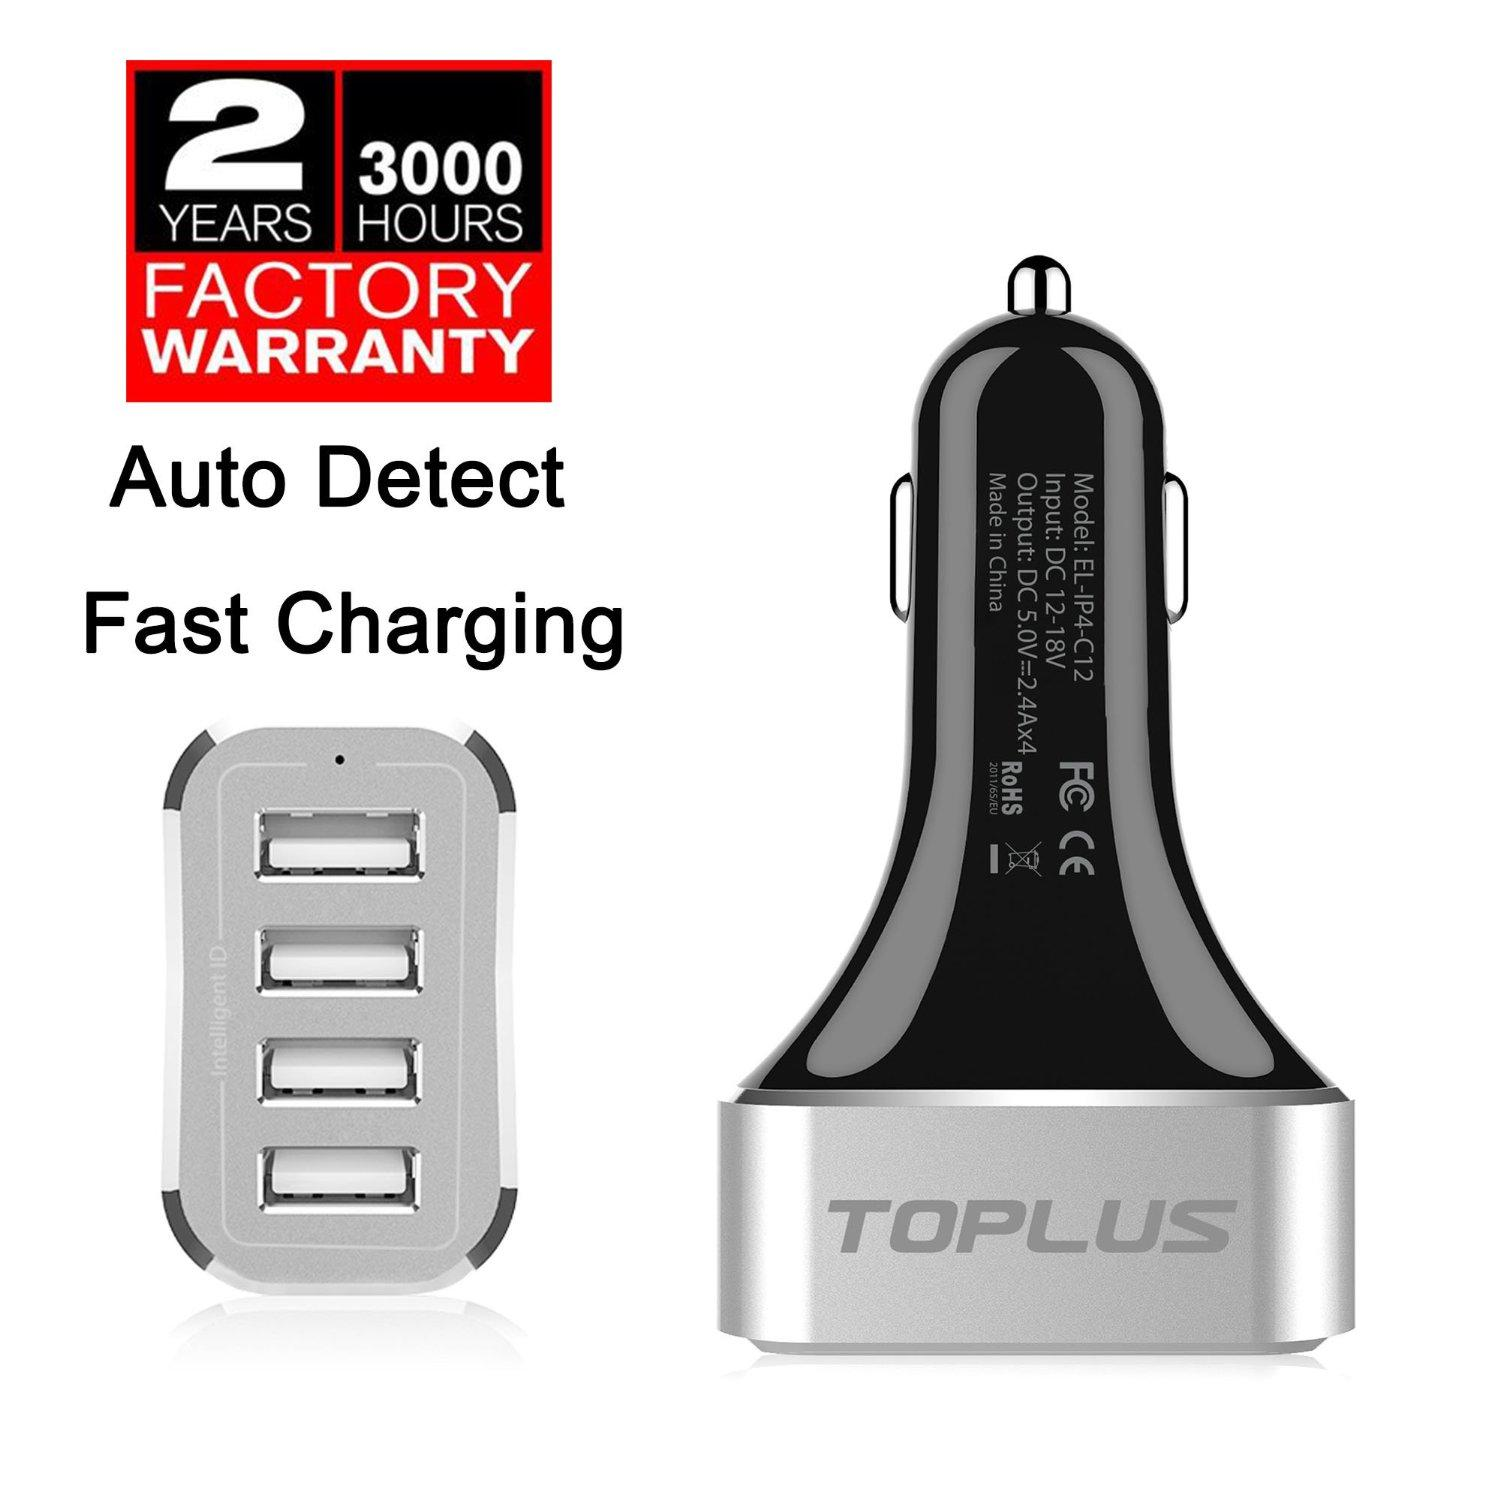 Toplus 9.6A/48W 4-Port USB Car Charger with Intelligent Identification Technology